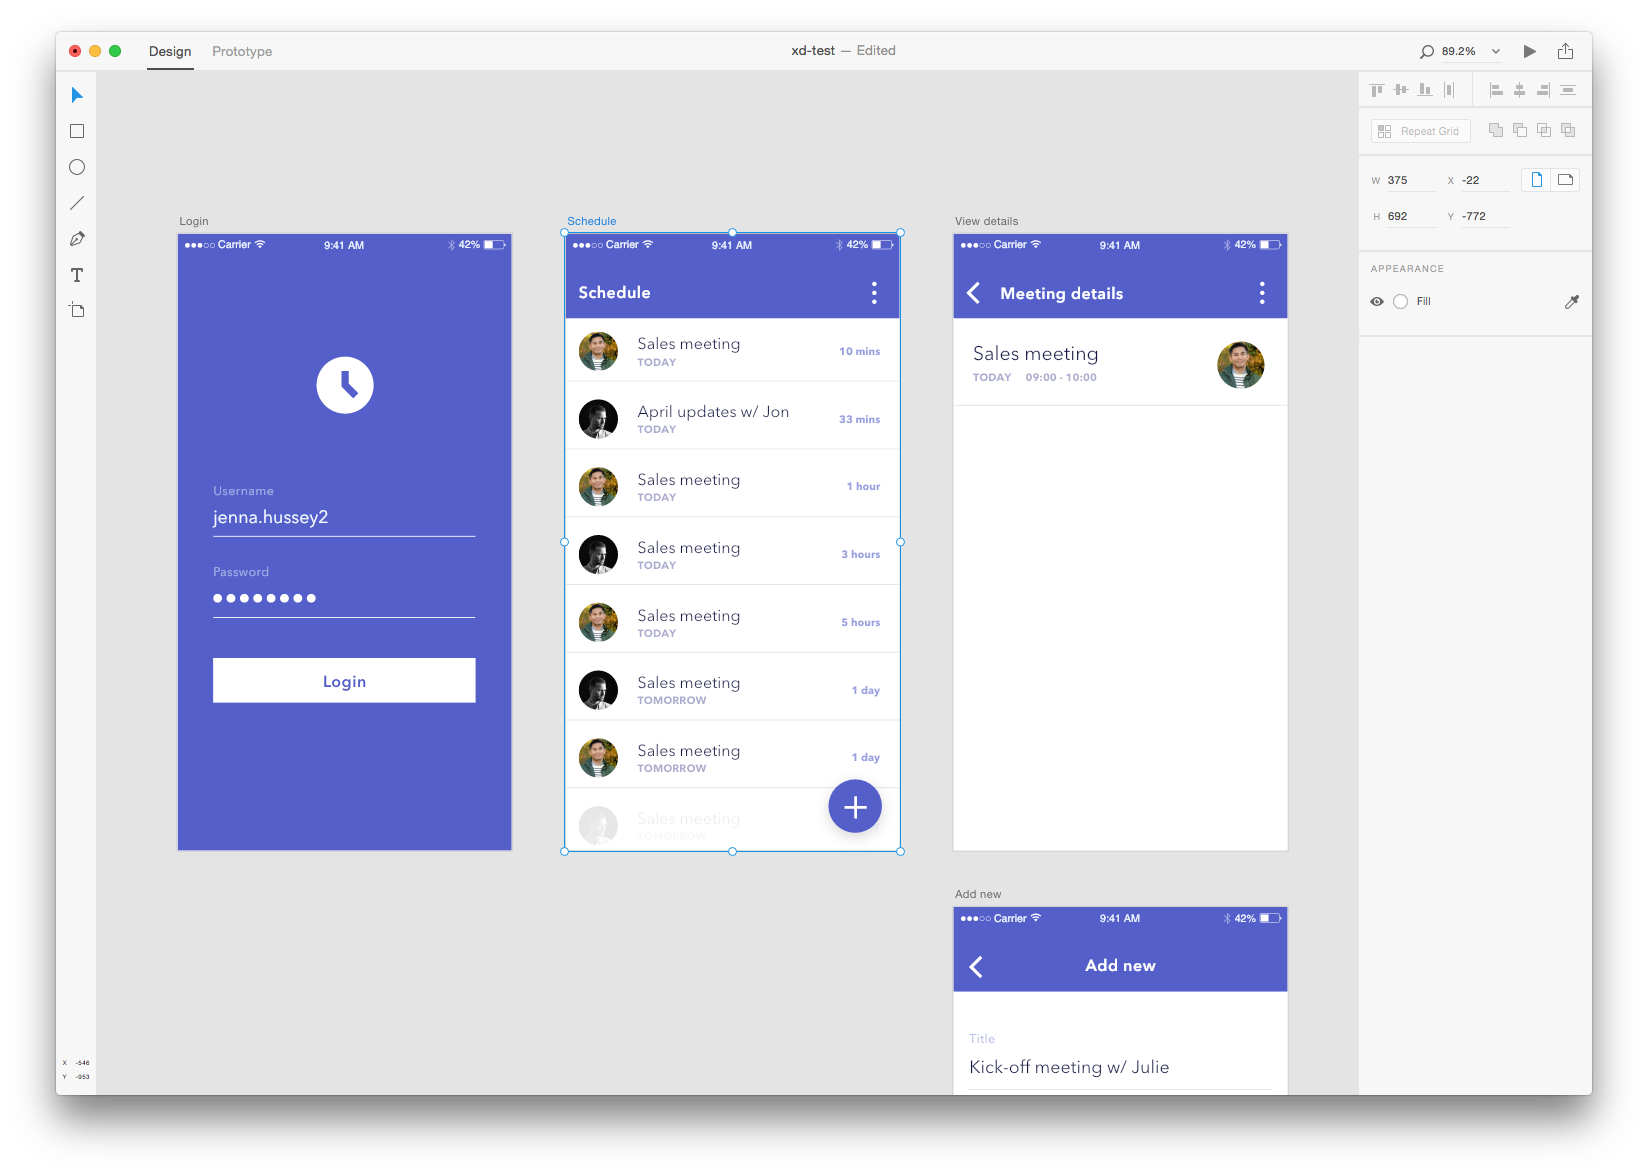 android-layout-design-tools-adobexd